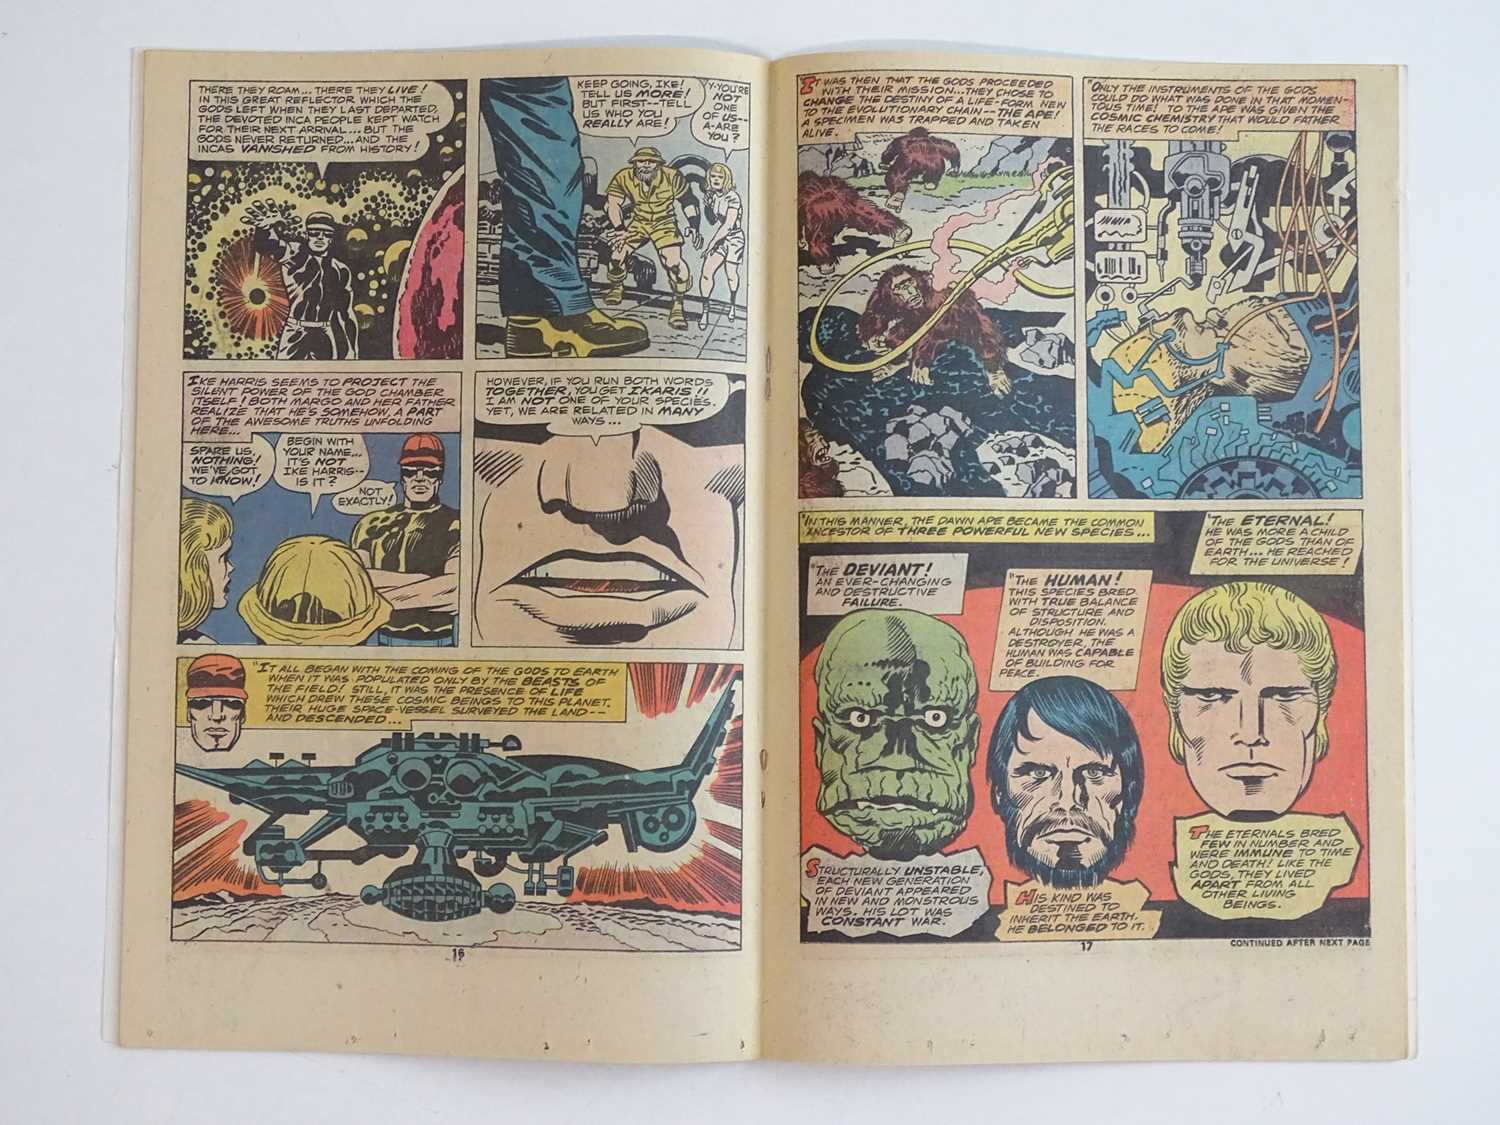 ETERNALS #1 - (1976 - MARVEL) - HOT Key book + Origin and First appearances of the Eternals (Ikaris, - Image 5 of 9